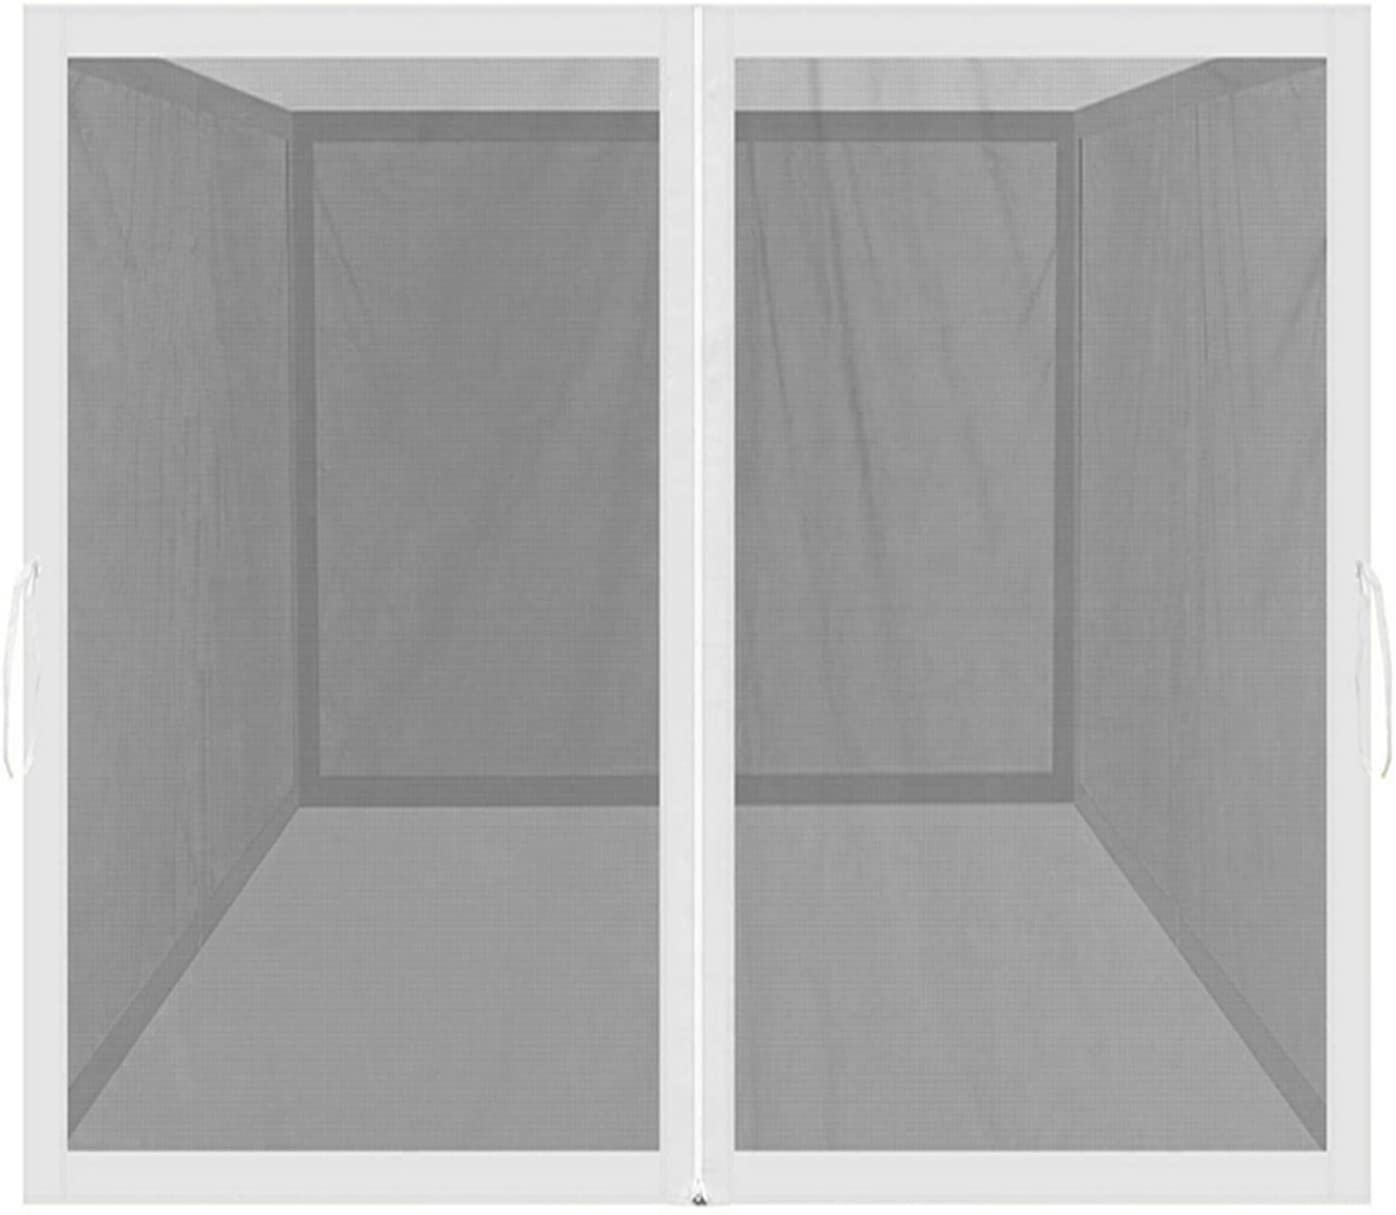 Mosquito Classic Free shipping on posting reviews Net for Outdoor Patio Screen Camp and Garden House